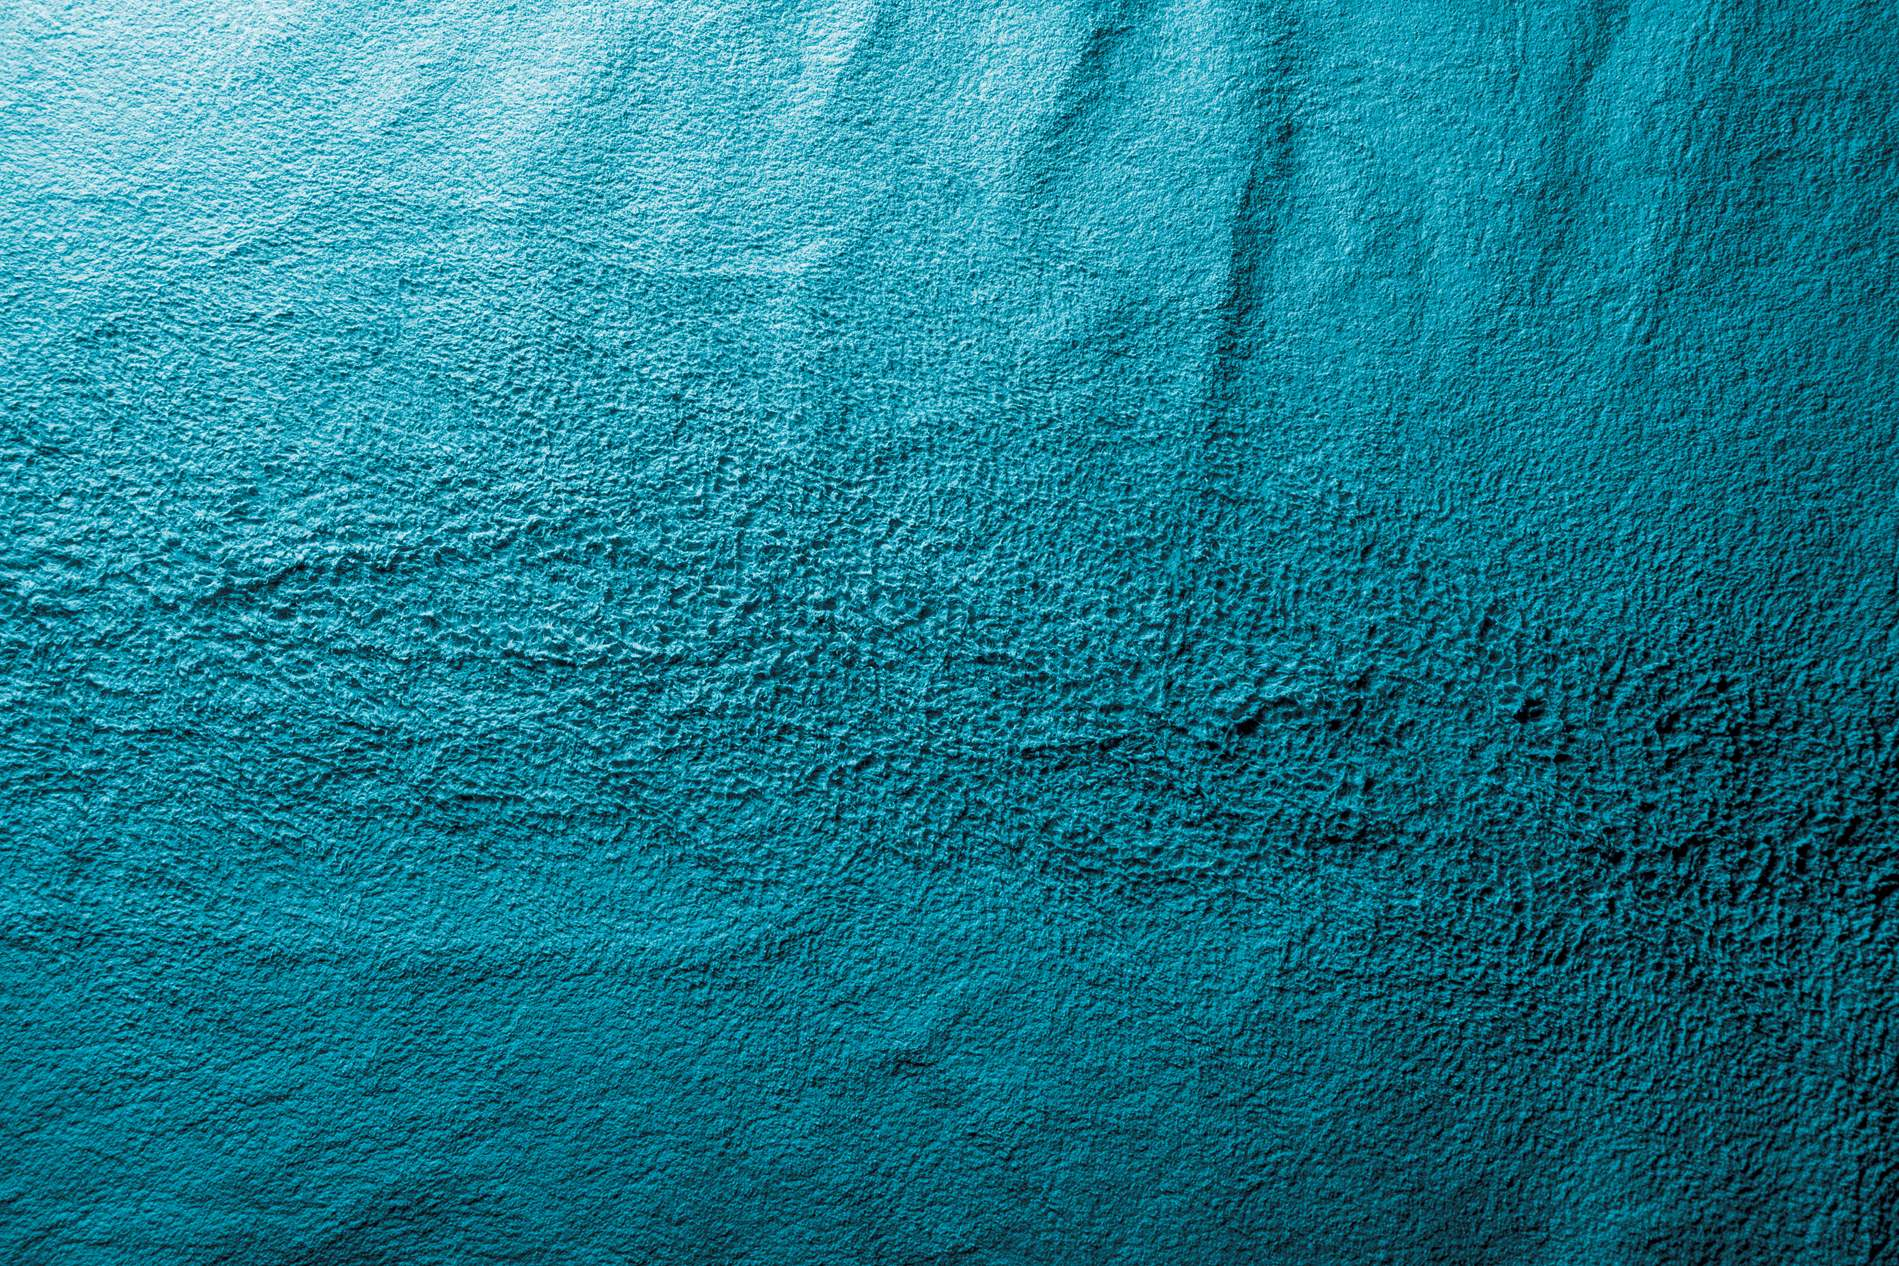 Vintage Marine Blue Soft Texture Background - PhotoHDX